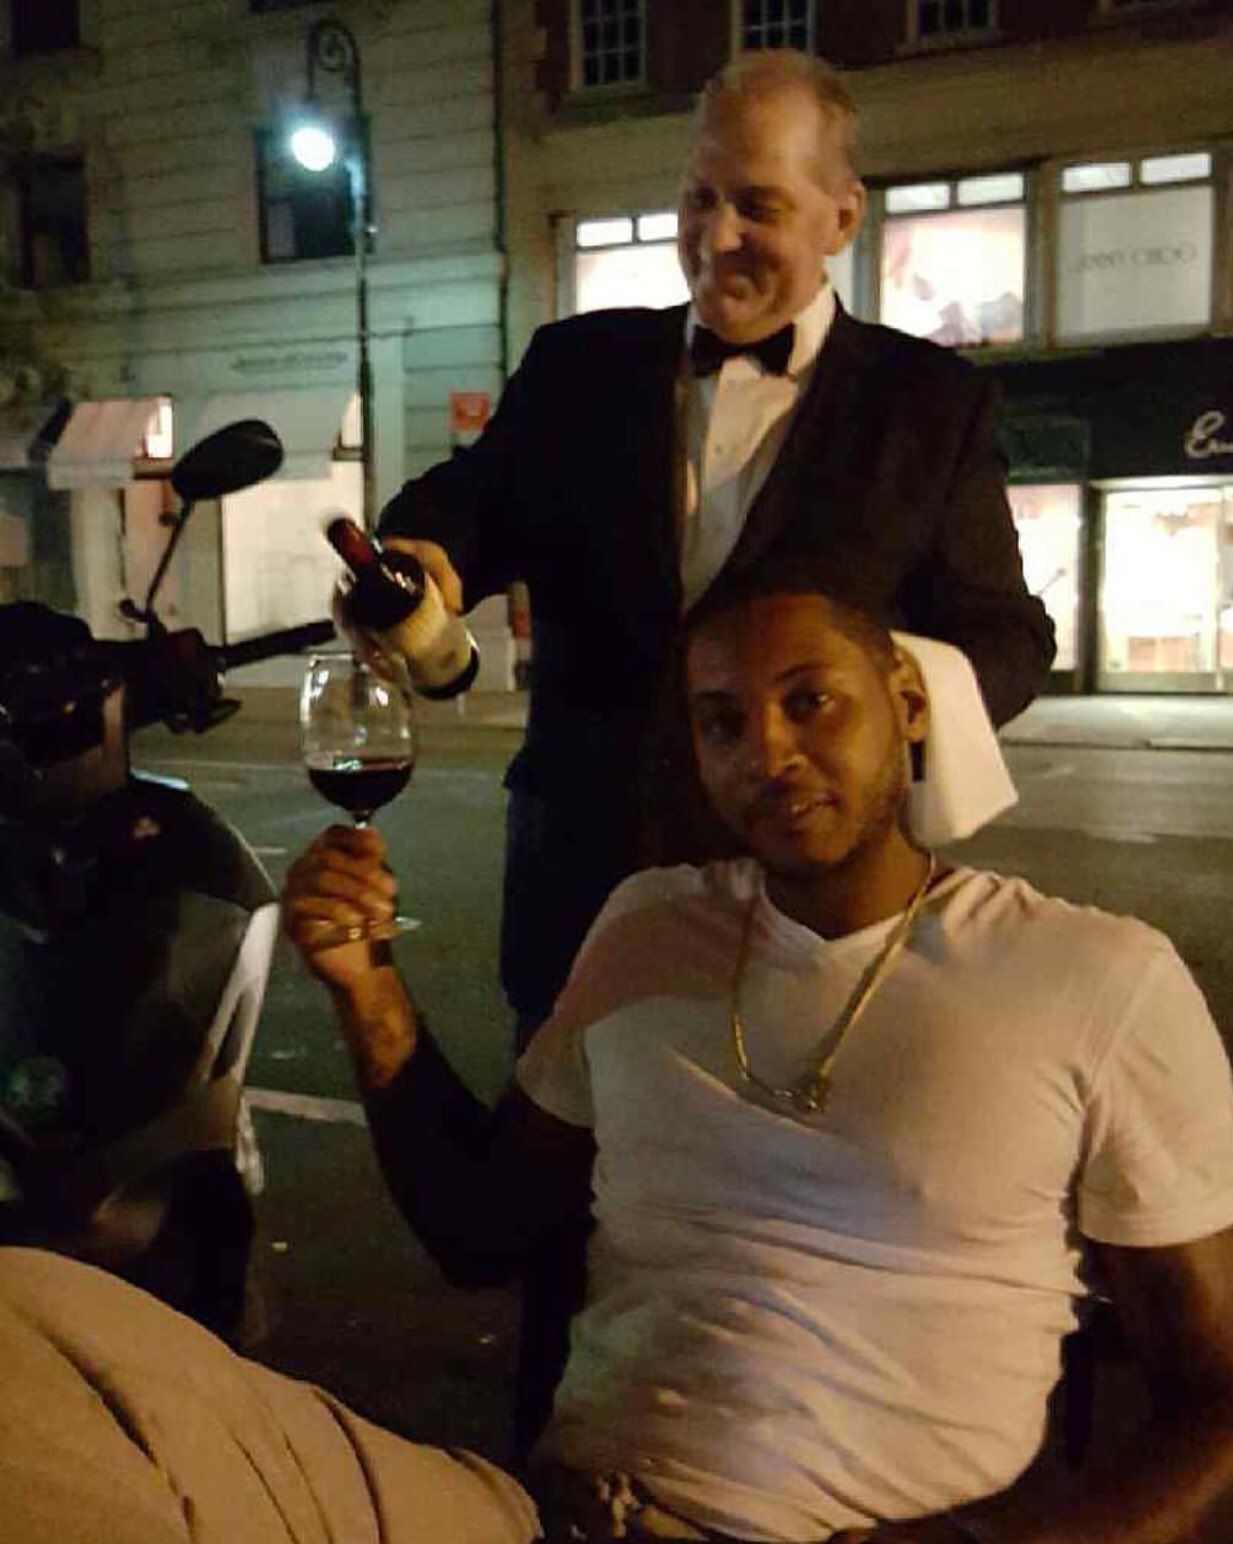 "*Mood ""All Critics Can Duck Sick"" #STAYME7O https://t.co/mJfSWP9kYC"